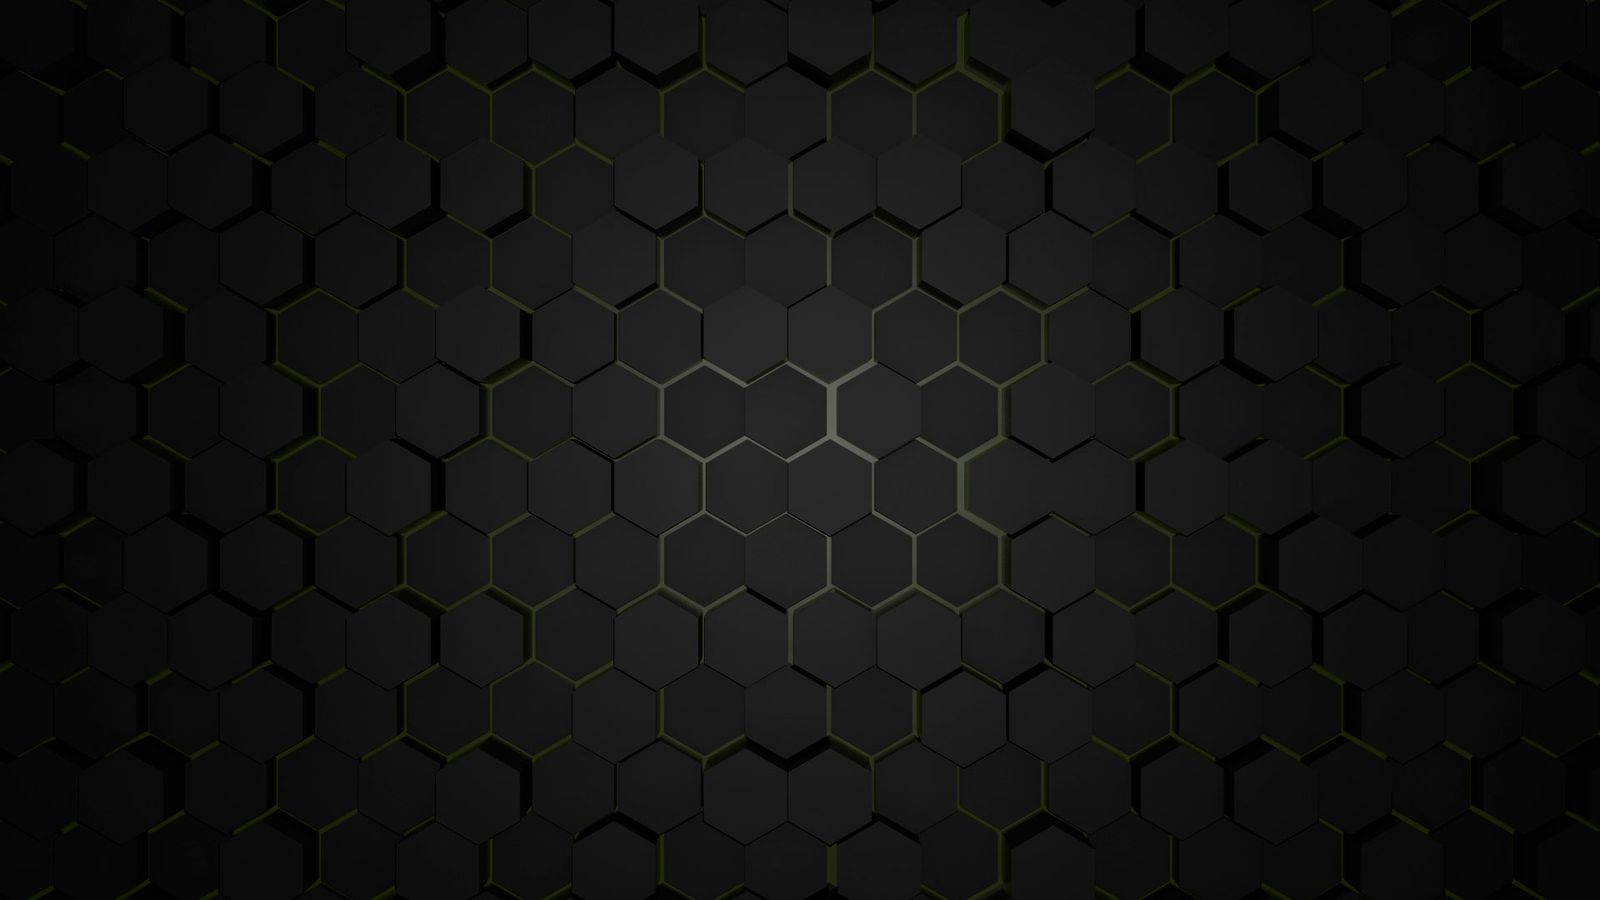 Black Abstract Wallpaper, Picture, Image